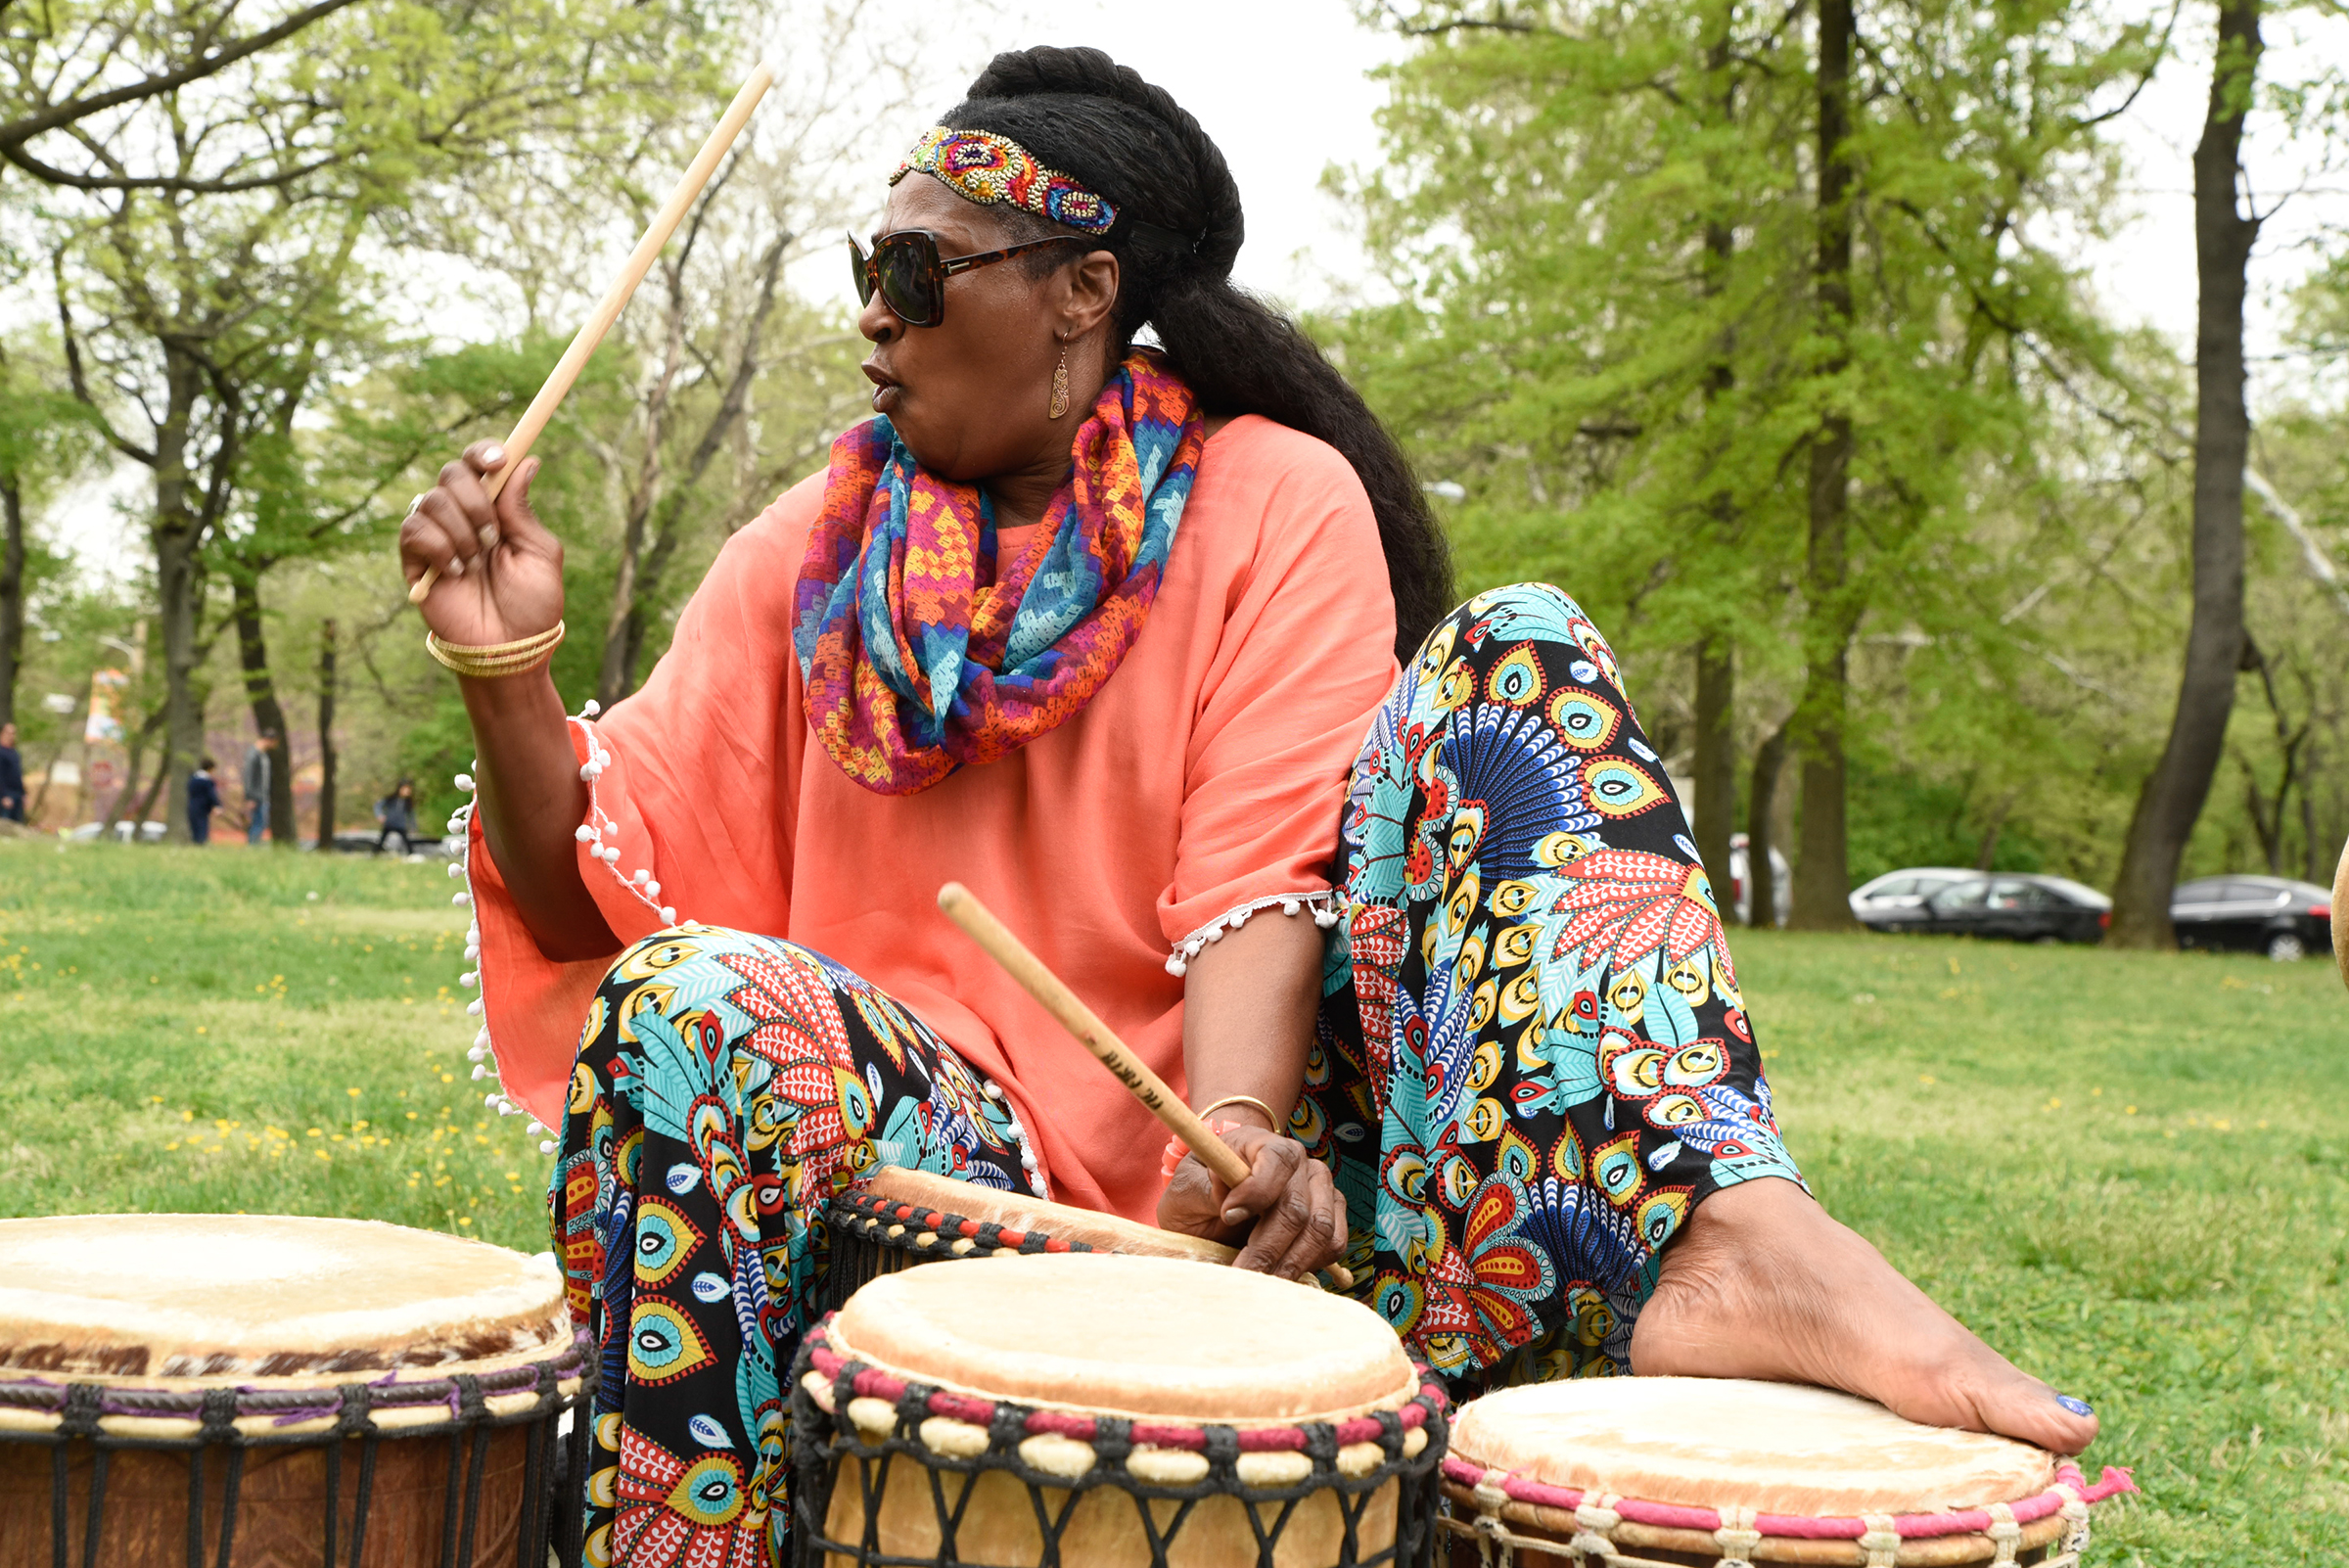 Mafalda Thomas-Bouzy plays the drums at the World Laughter Day celebration on the lawn of Smith Memorial Playground & Playhouse on May 6, 2018. Brianna Spause / Philadelphia Parks & Recreation